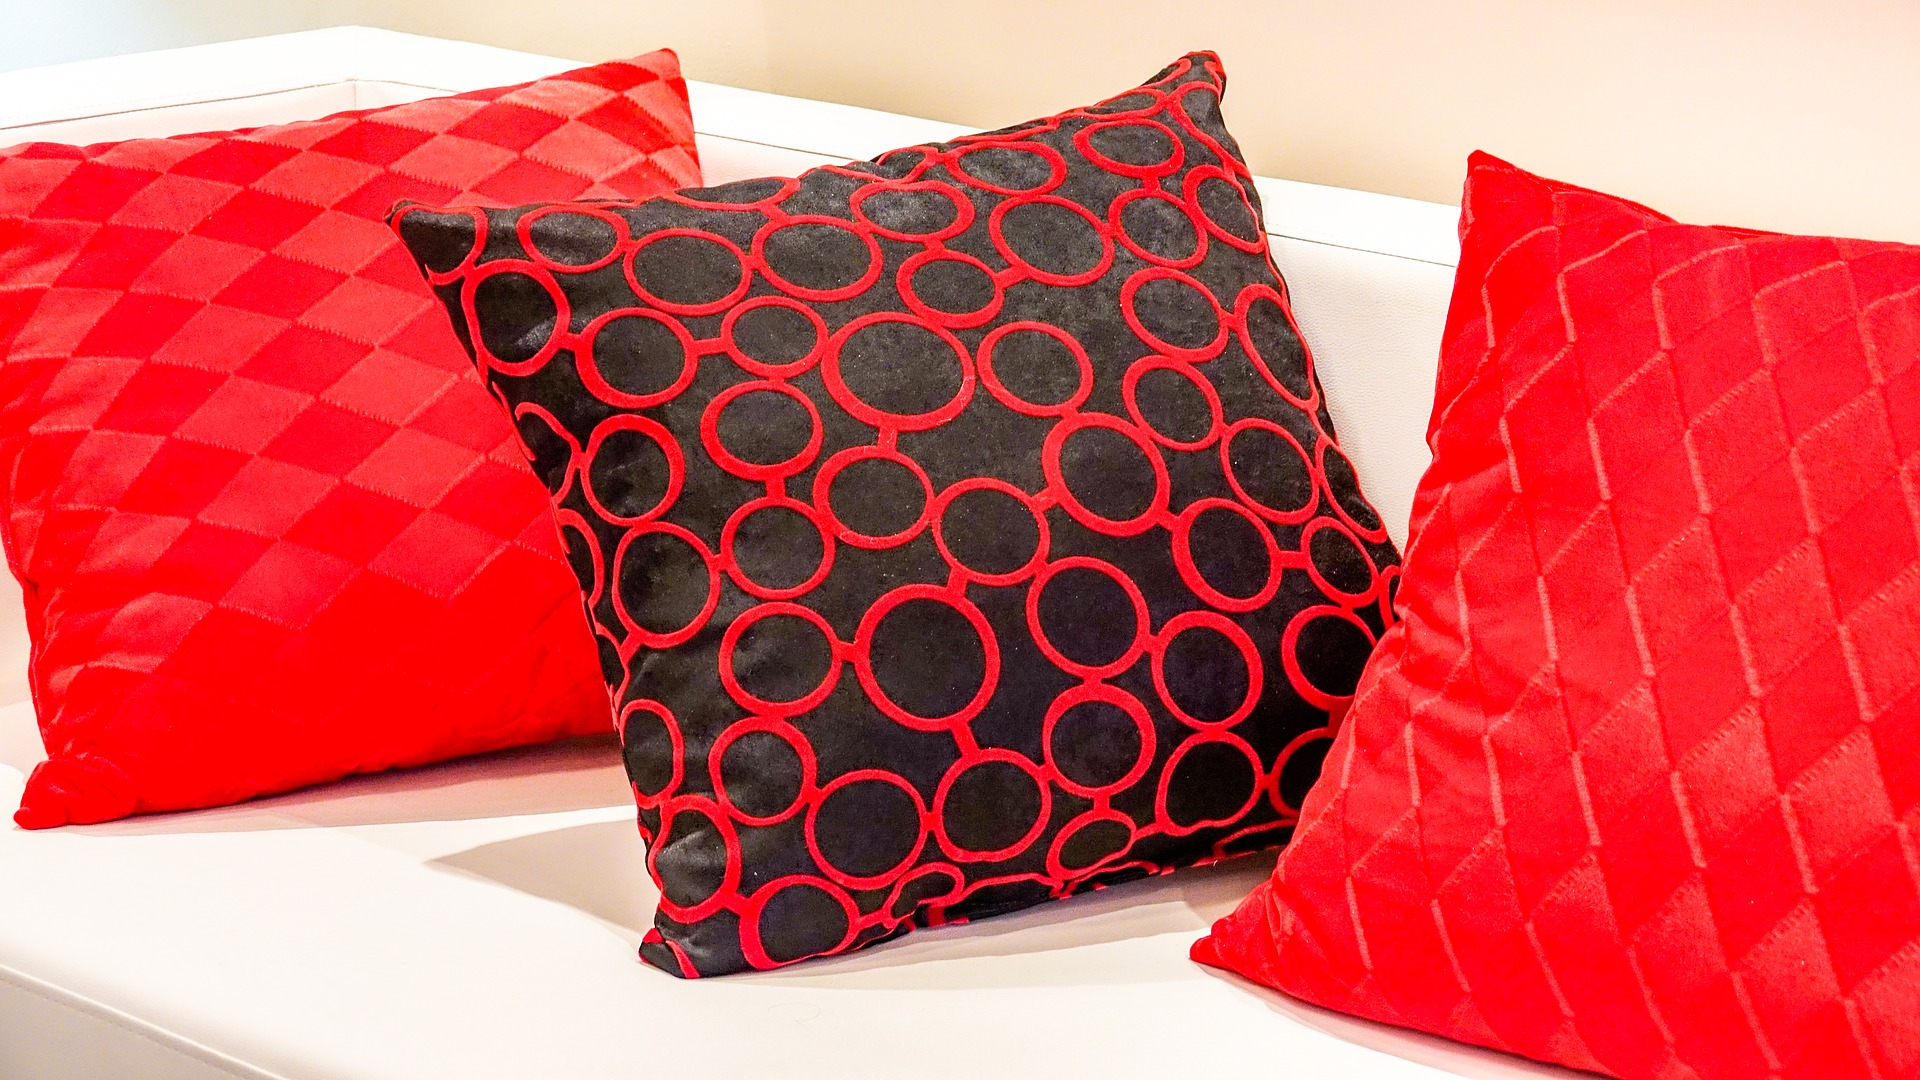 5 Steps to Beatifying Your Home's Interior Decorating red and black pillows